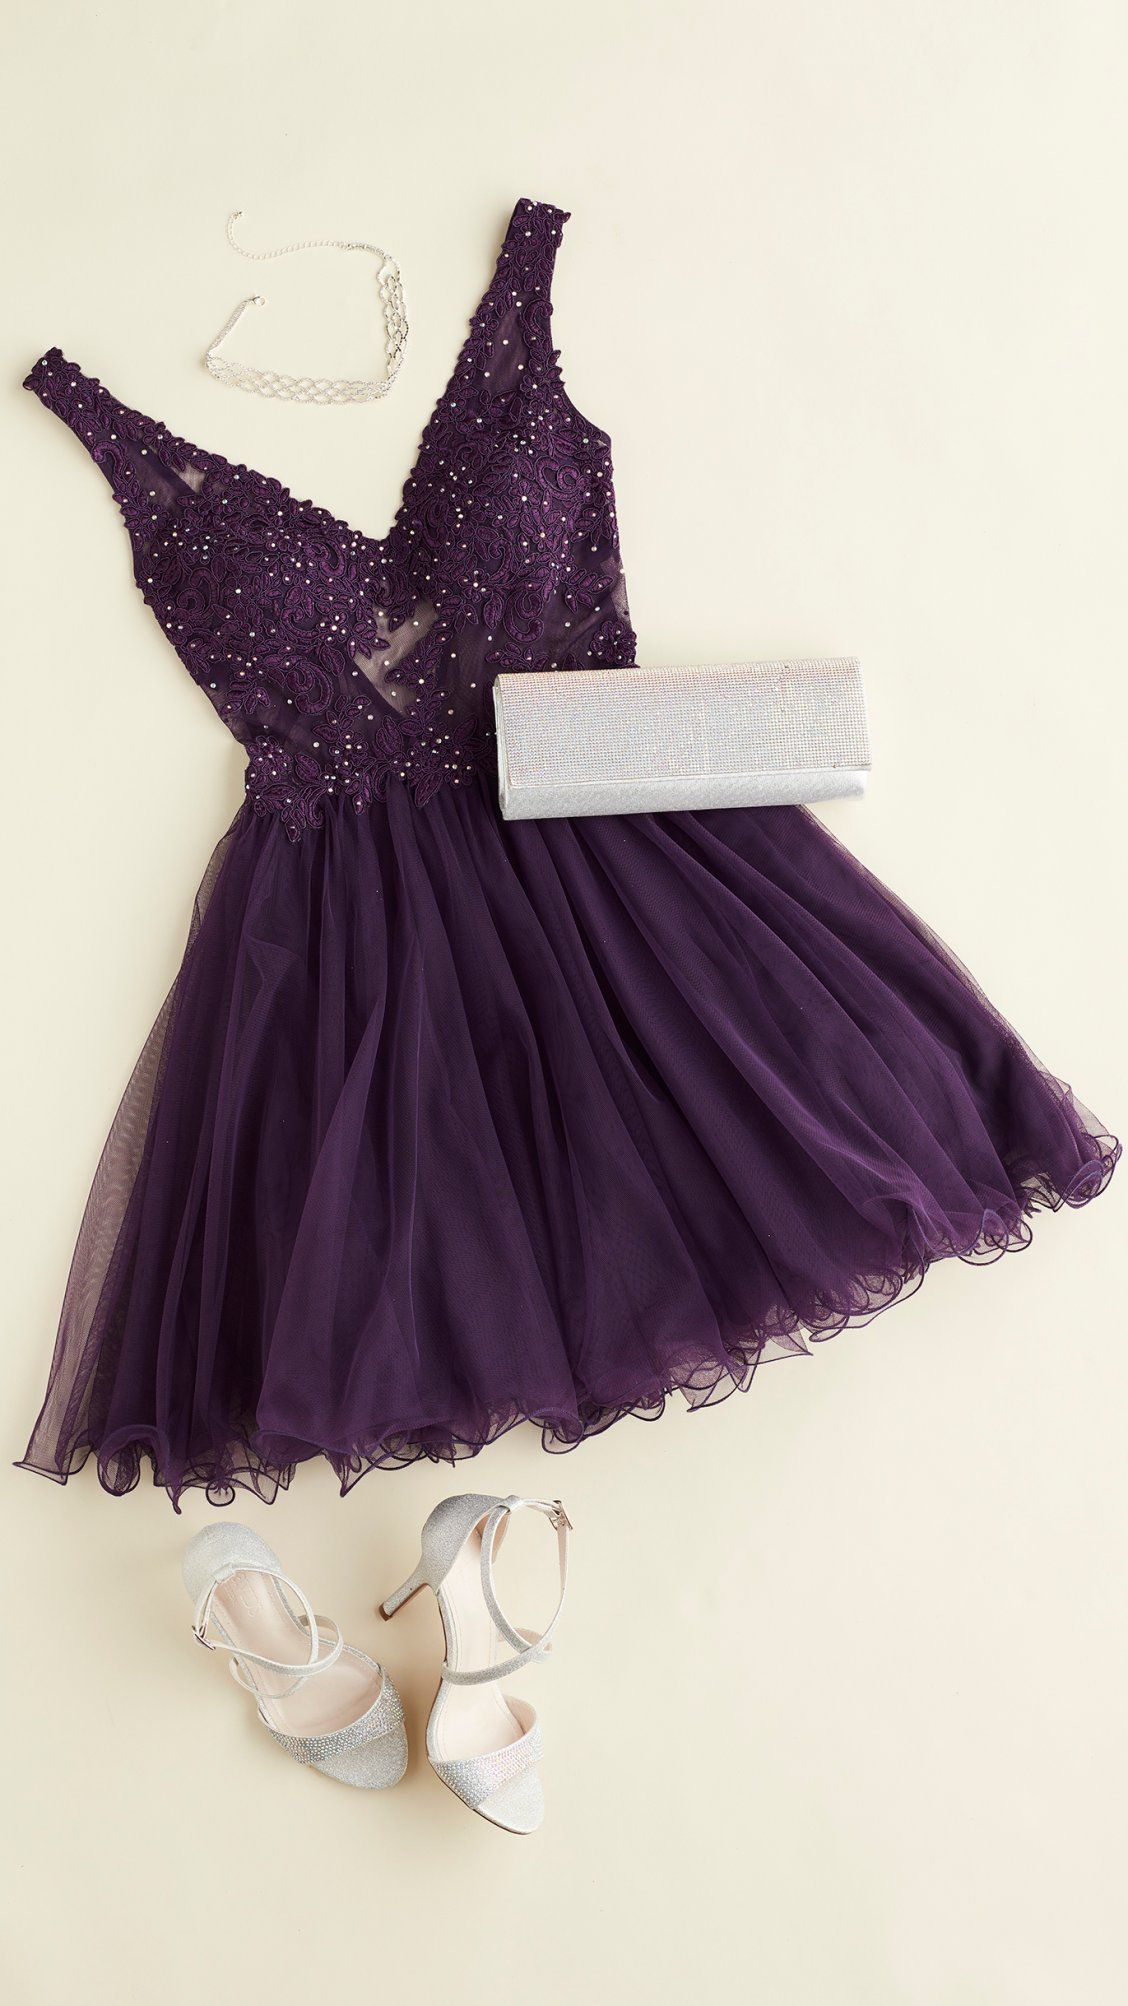 A Plum Dress Is Perfect For The Fall